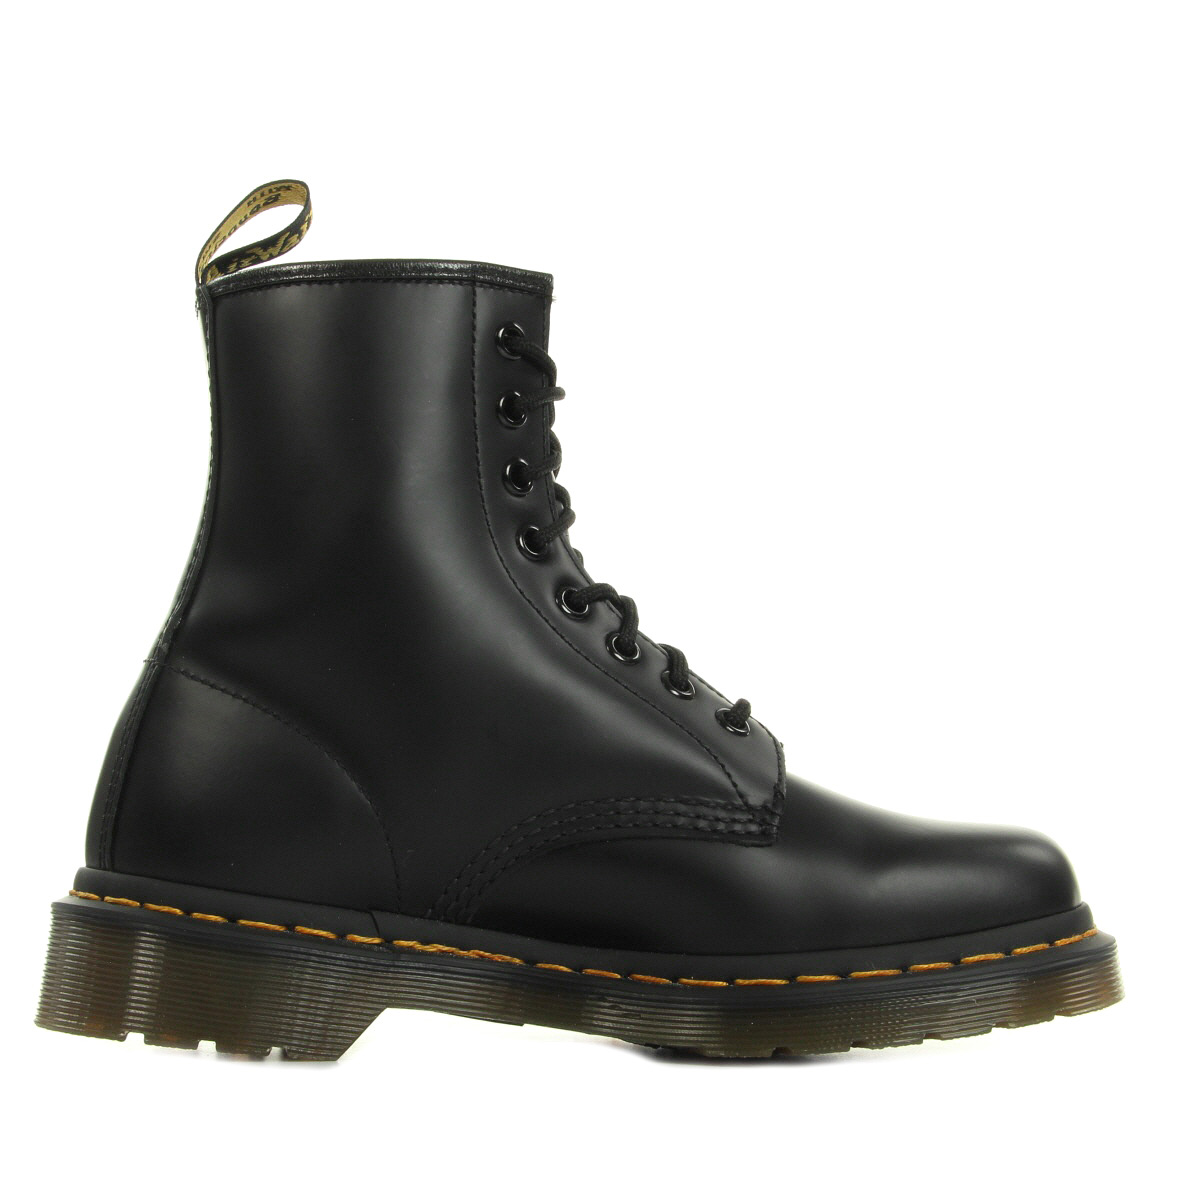 Chaussures Boots Dr Martens homme 1460 taille Noir